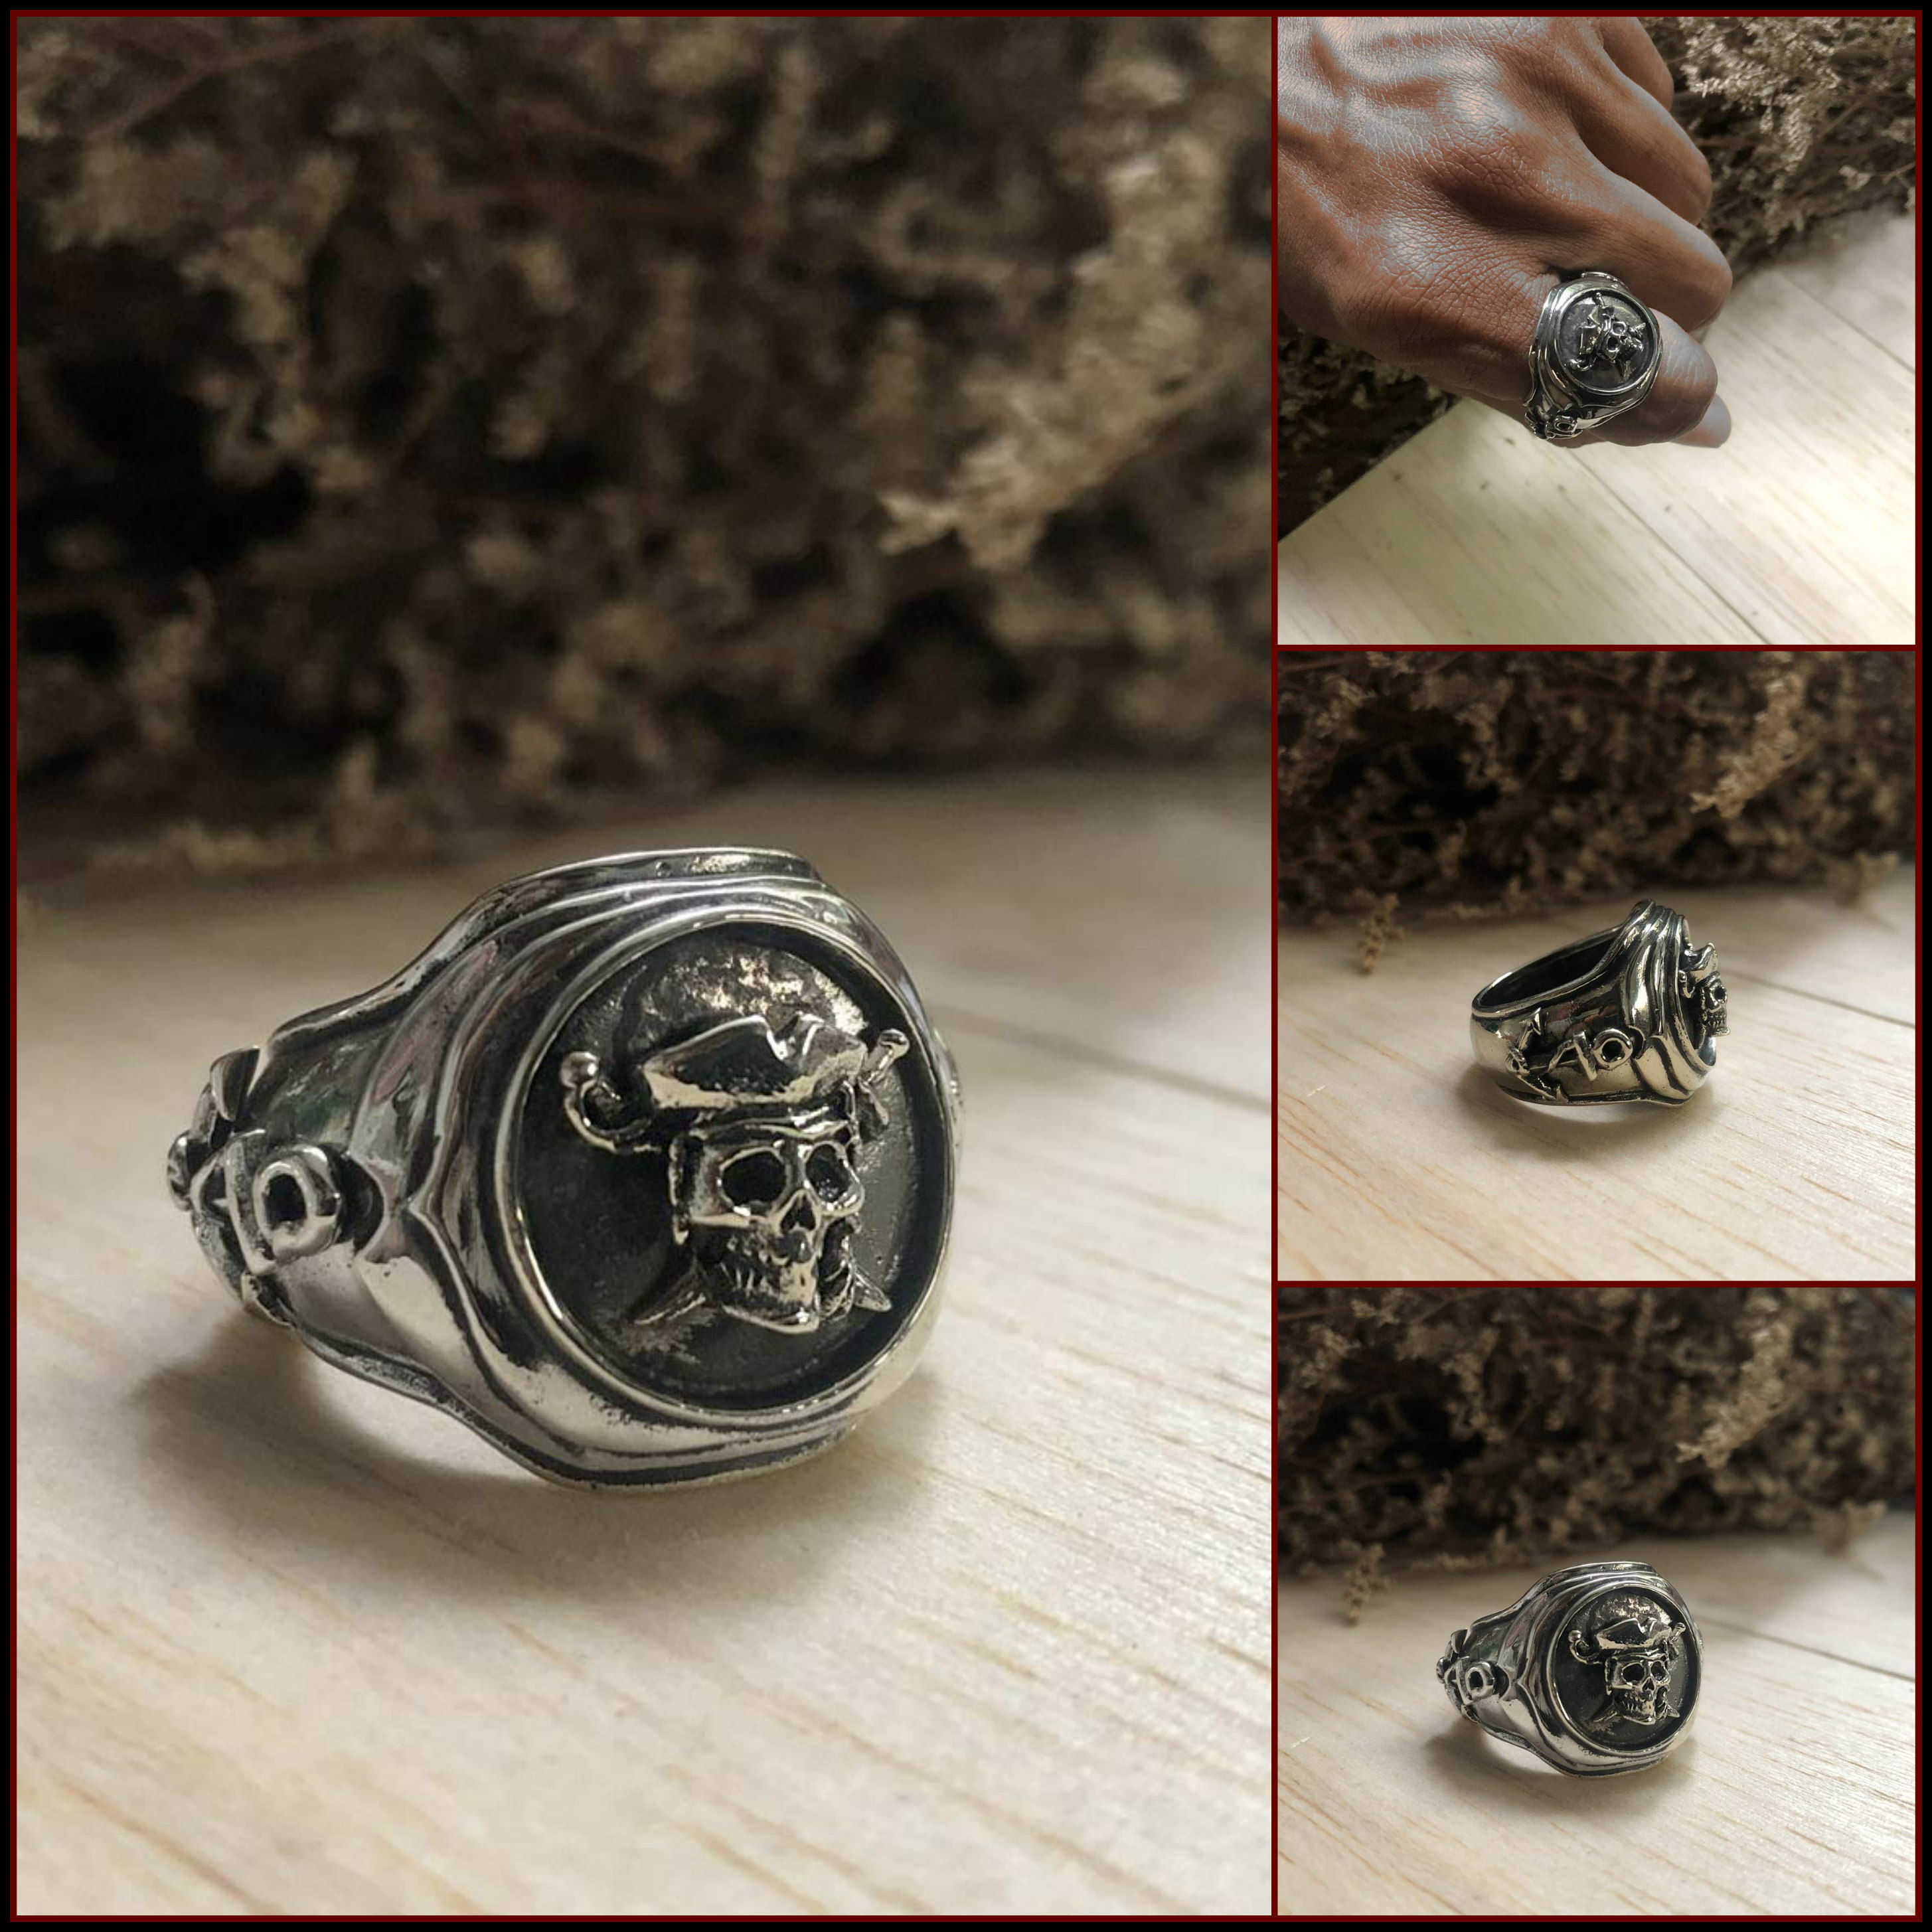 Men's Handmade Silver Pirate Scull and Crossbones, Anchor and Ship's Wheel Ring - DeluxeAdultCostumes.com